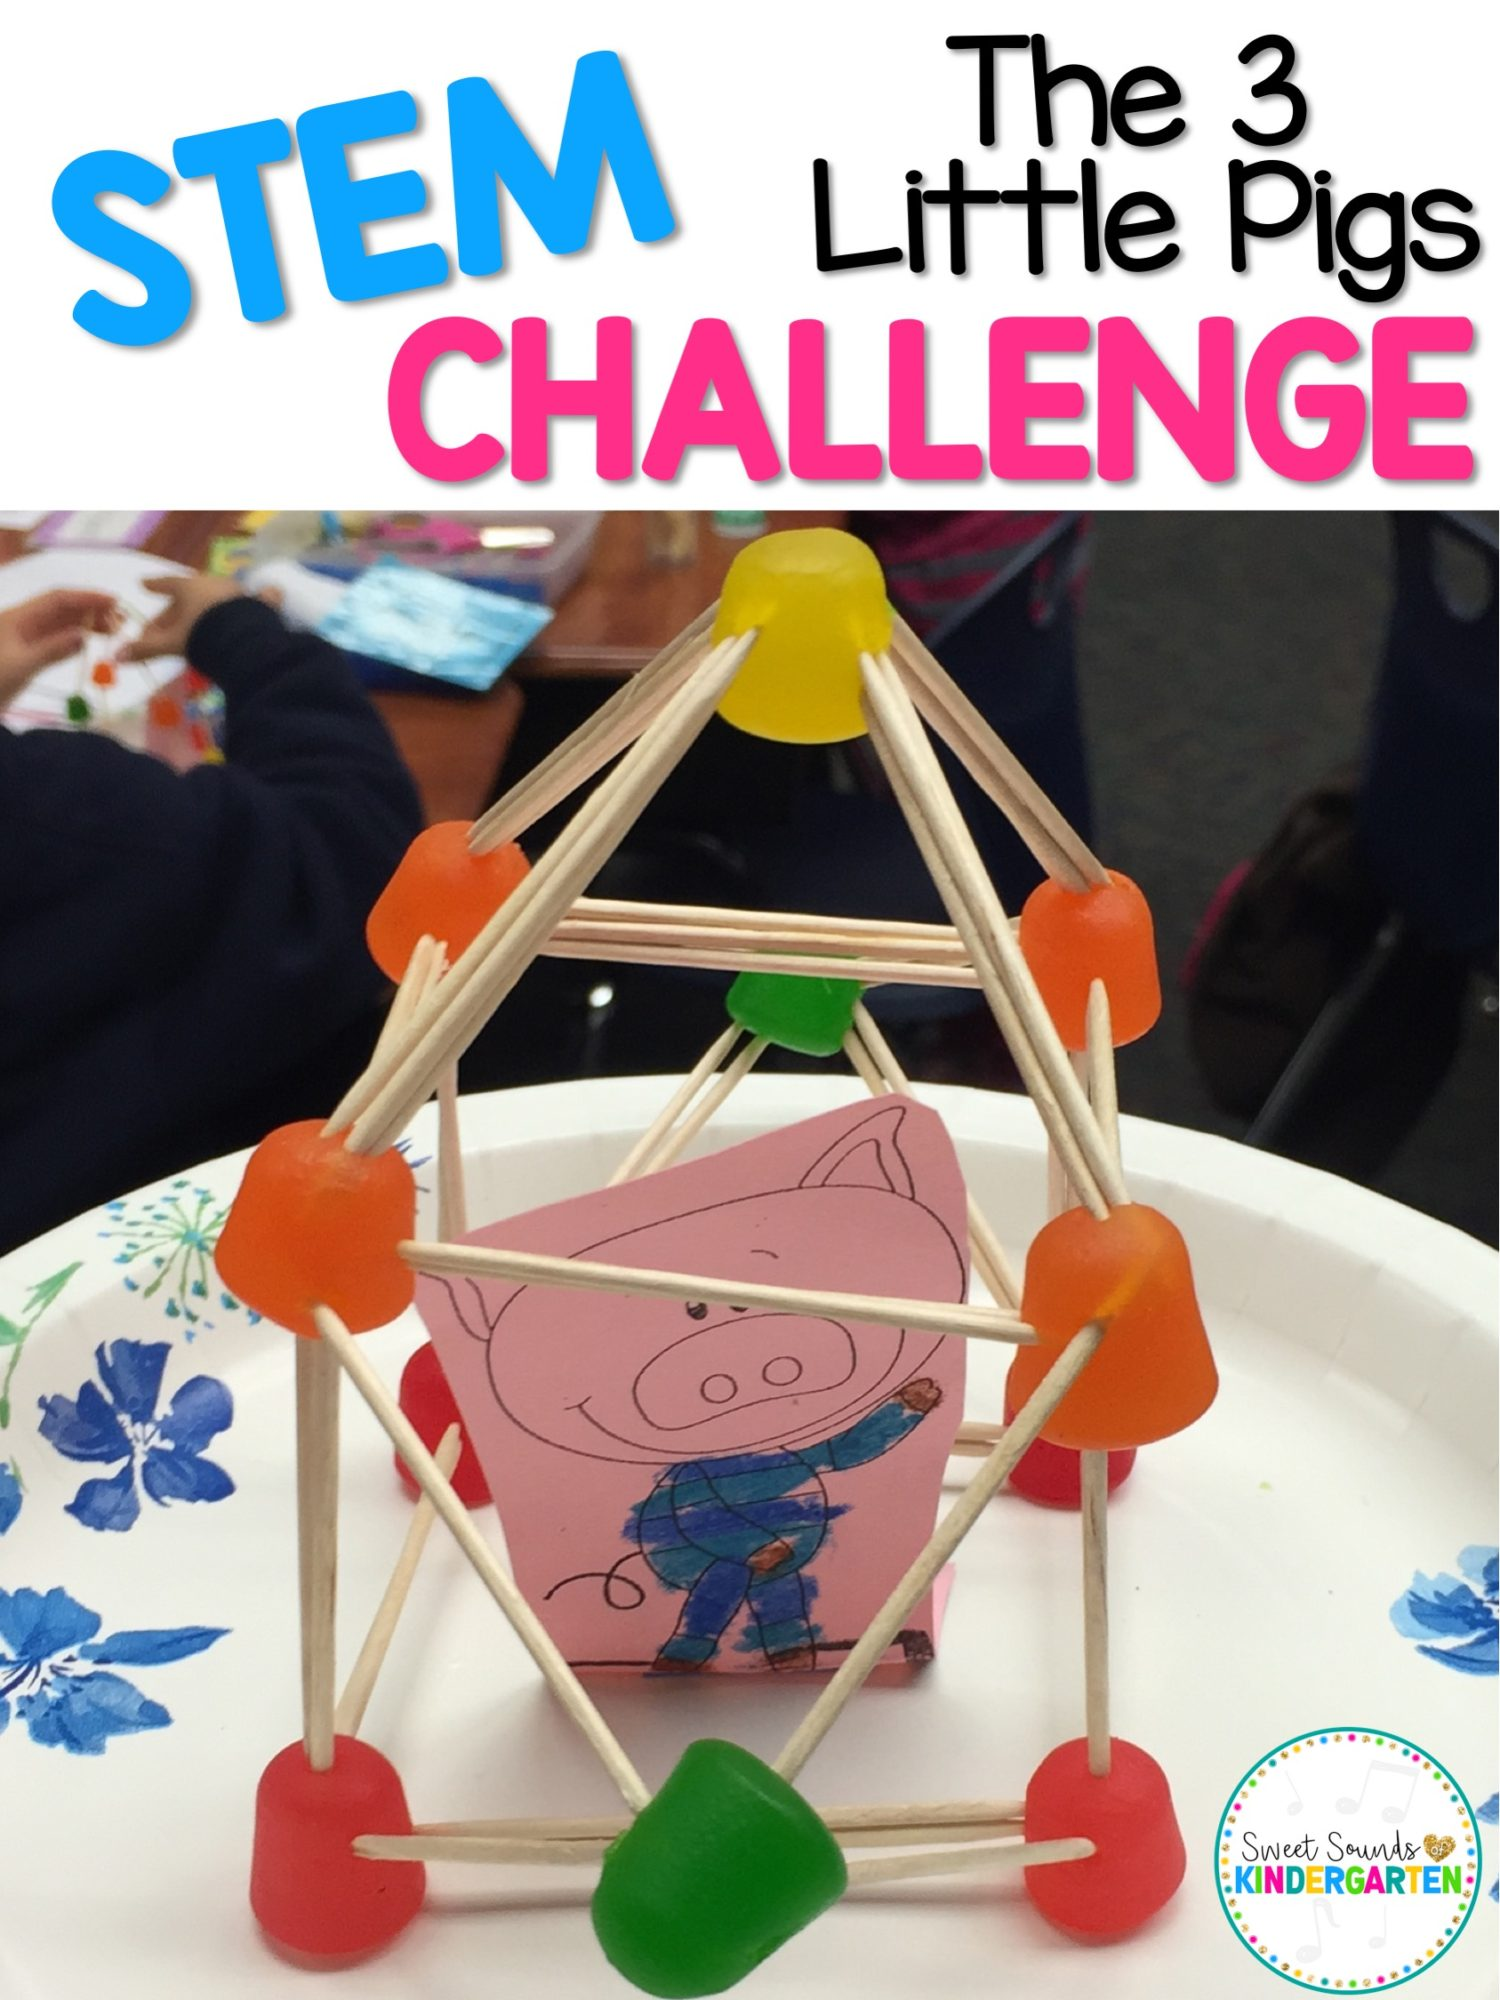 The 3 Little Pigs Stem Challenge